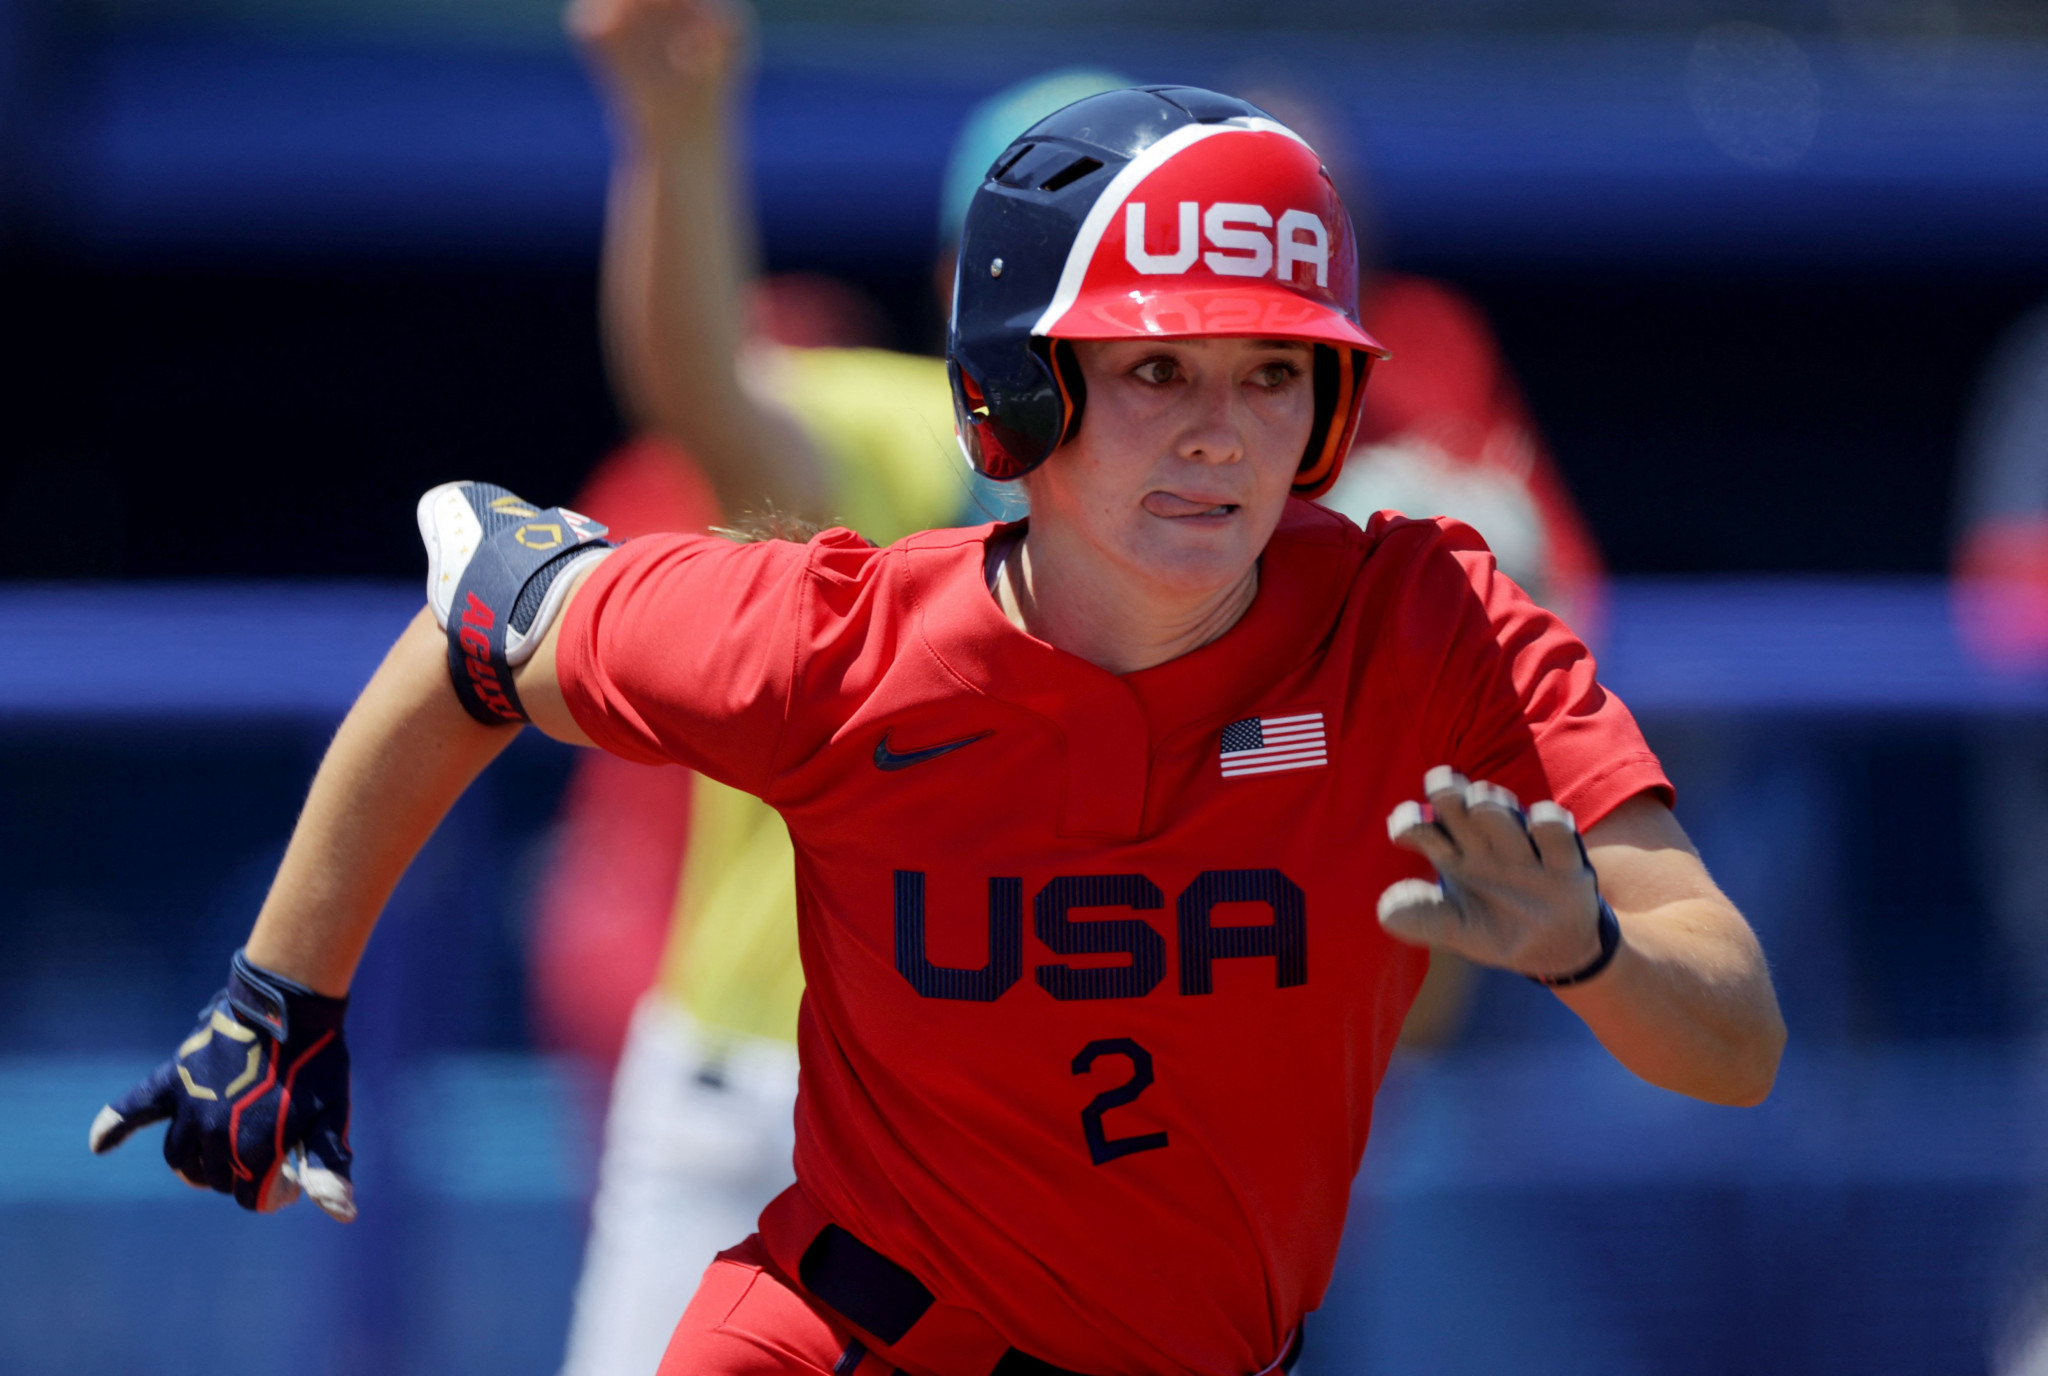 Hosts United States will contest the World Games softball tournament after winning silver at Tokyo 2020 ©Getty Images